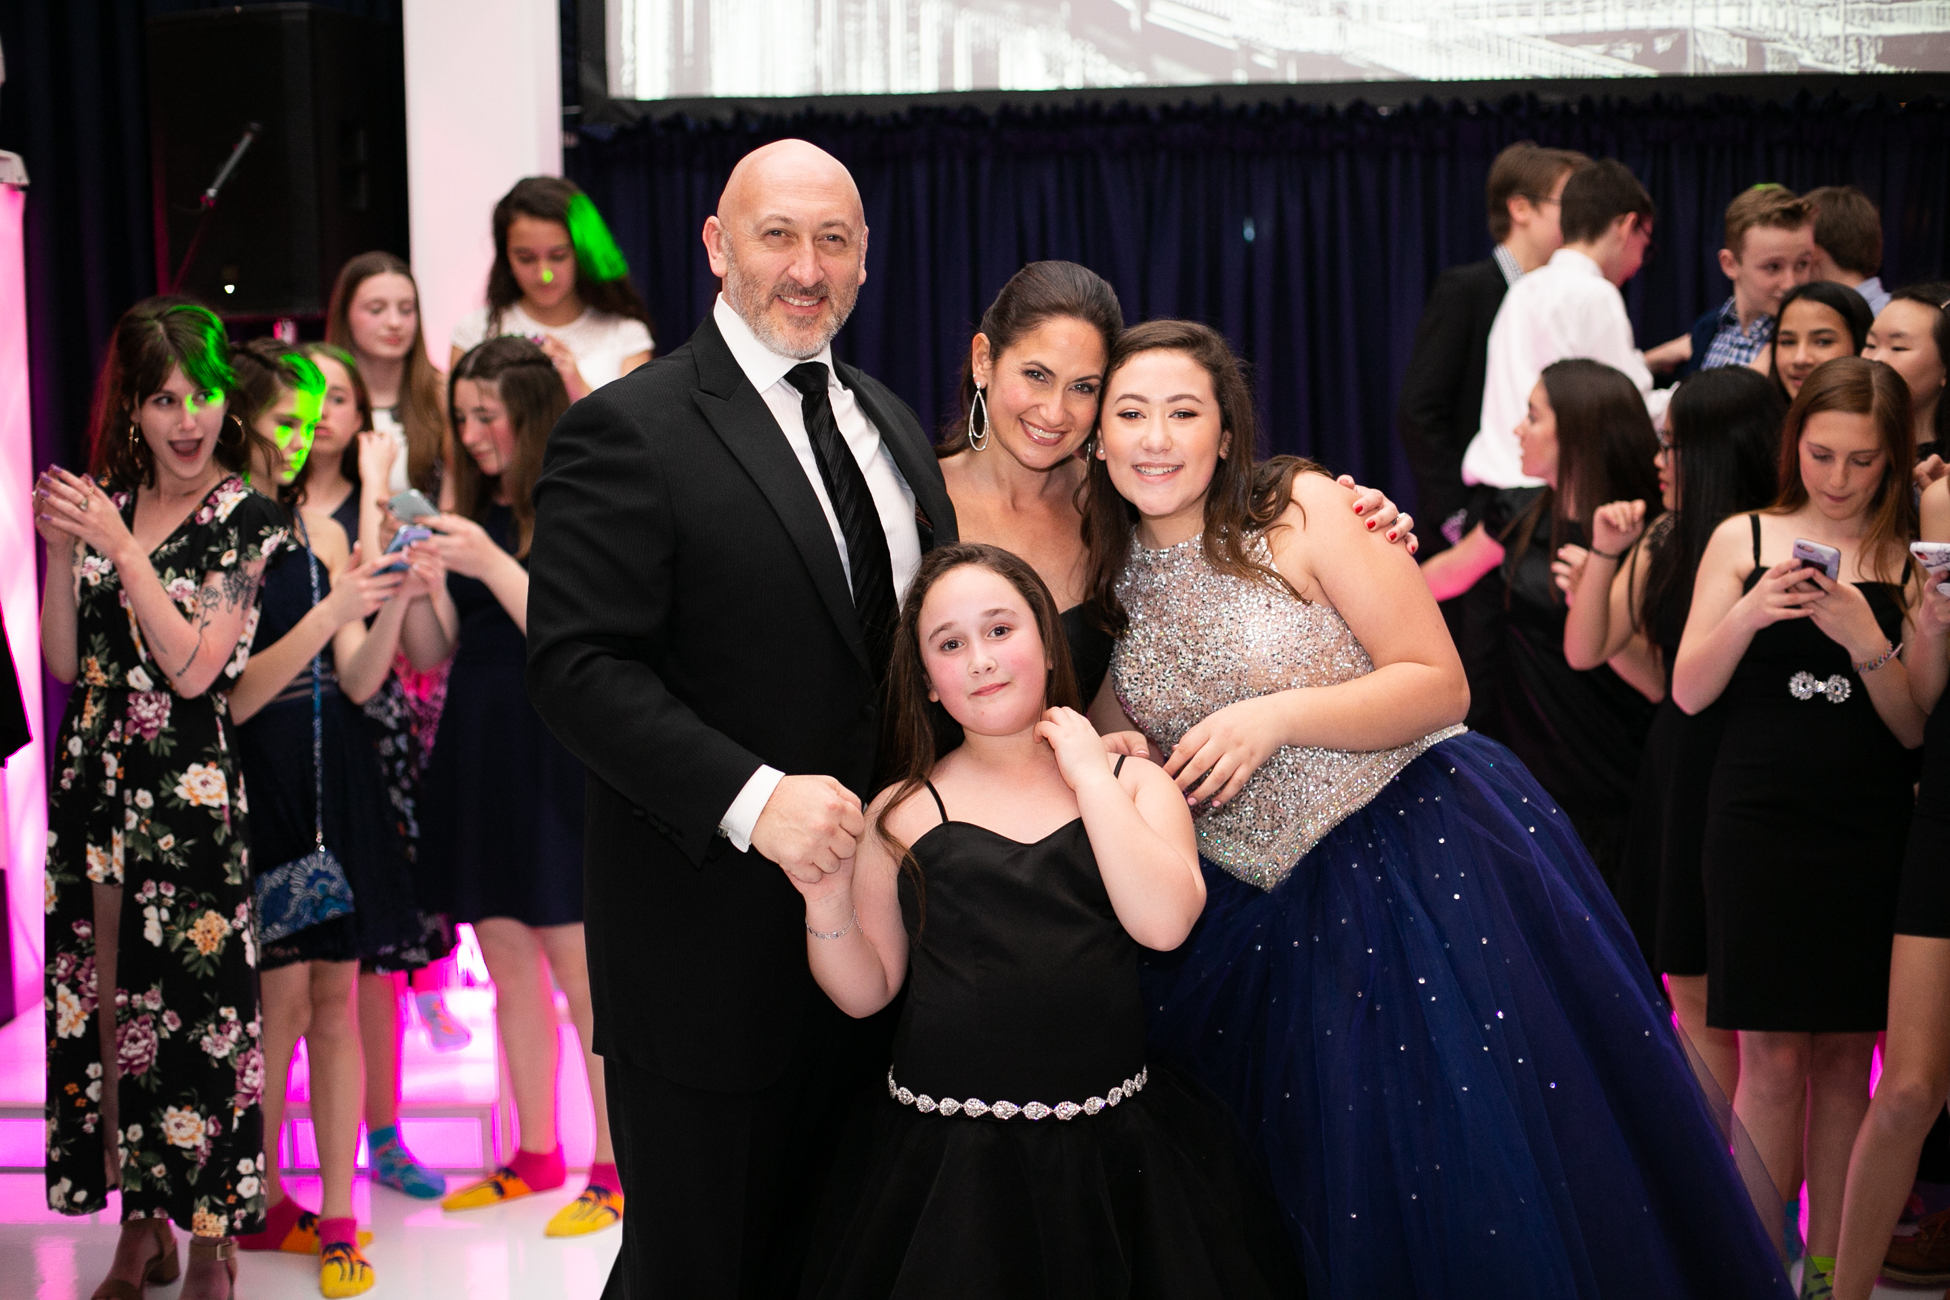 Sydney's Bat Mitzvah at Sheraton Society Hill by Avi Loren Fox LLC - Sneak Peak-35.jpg